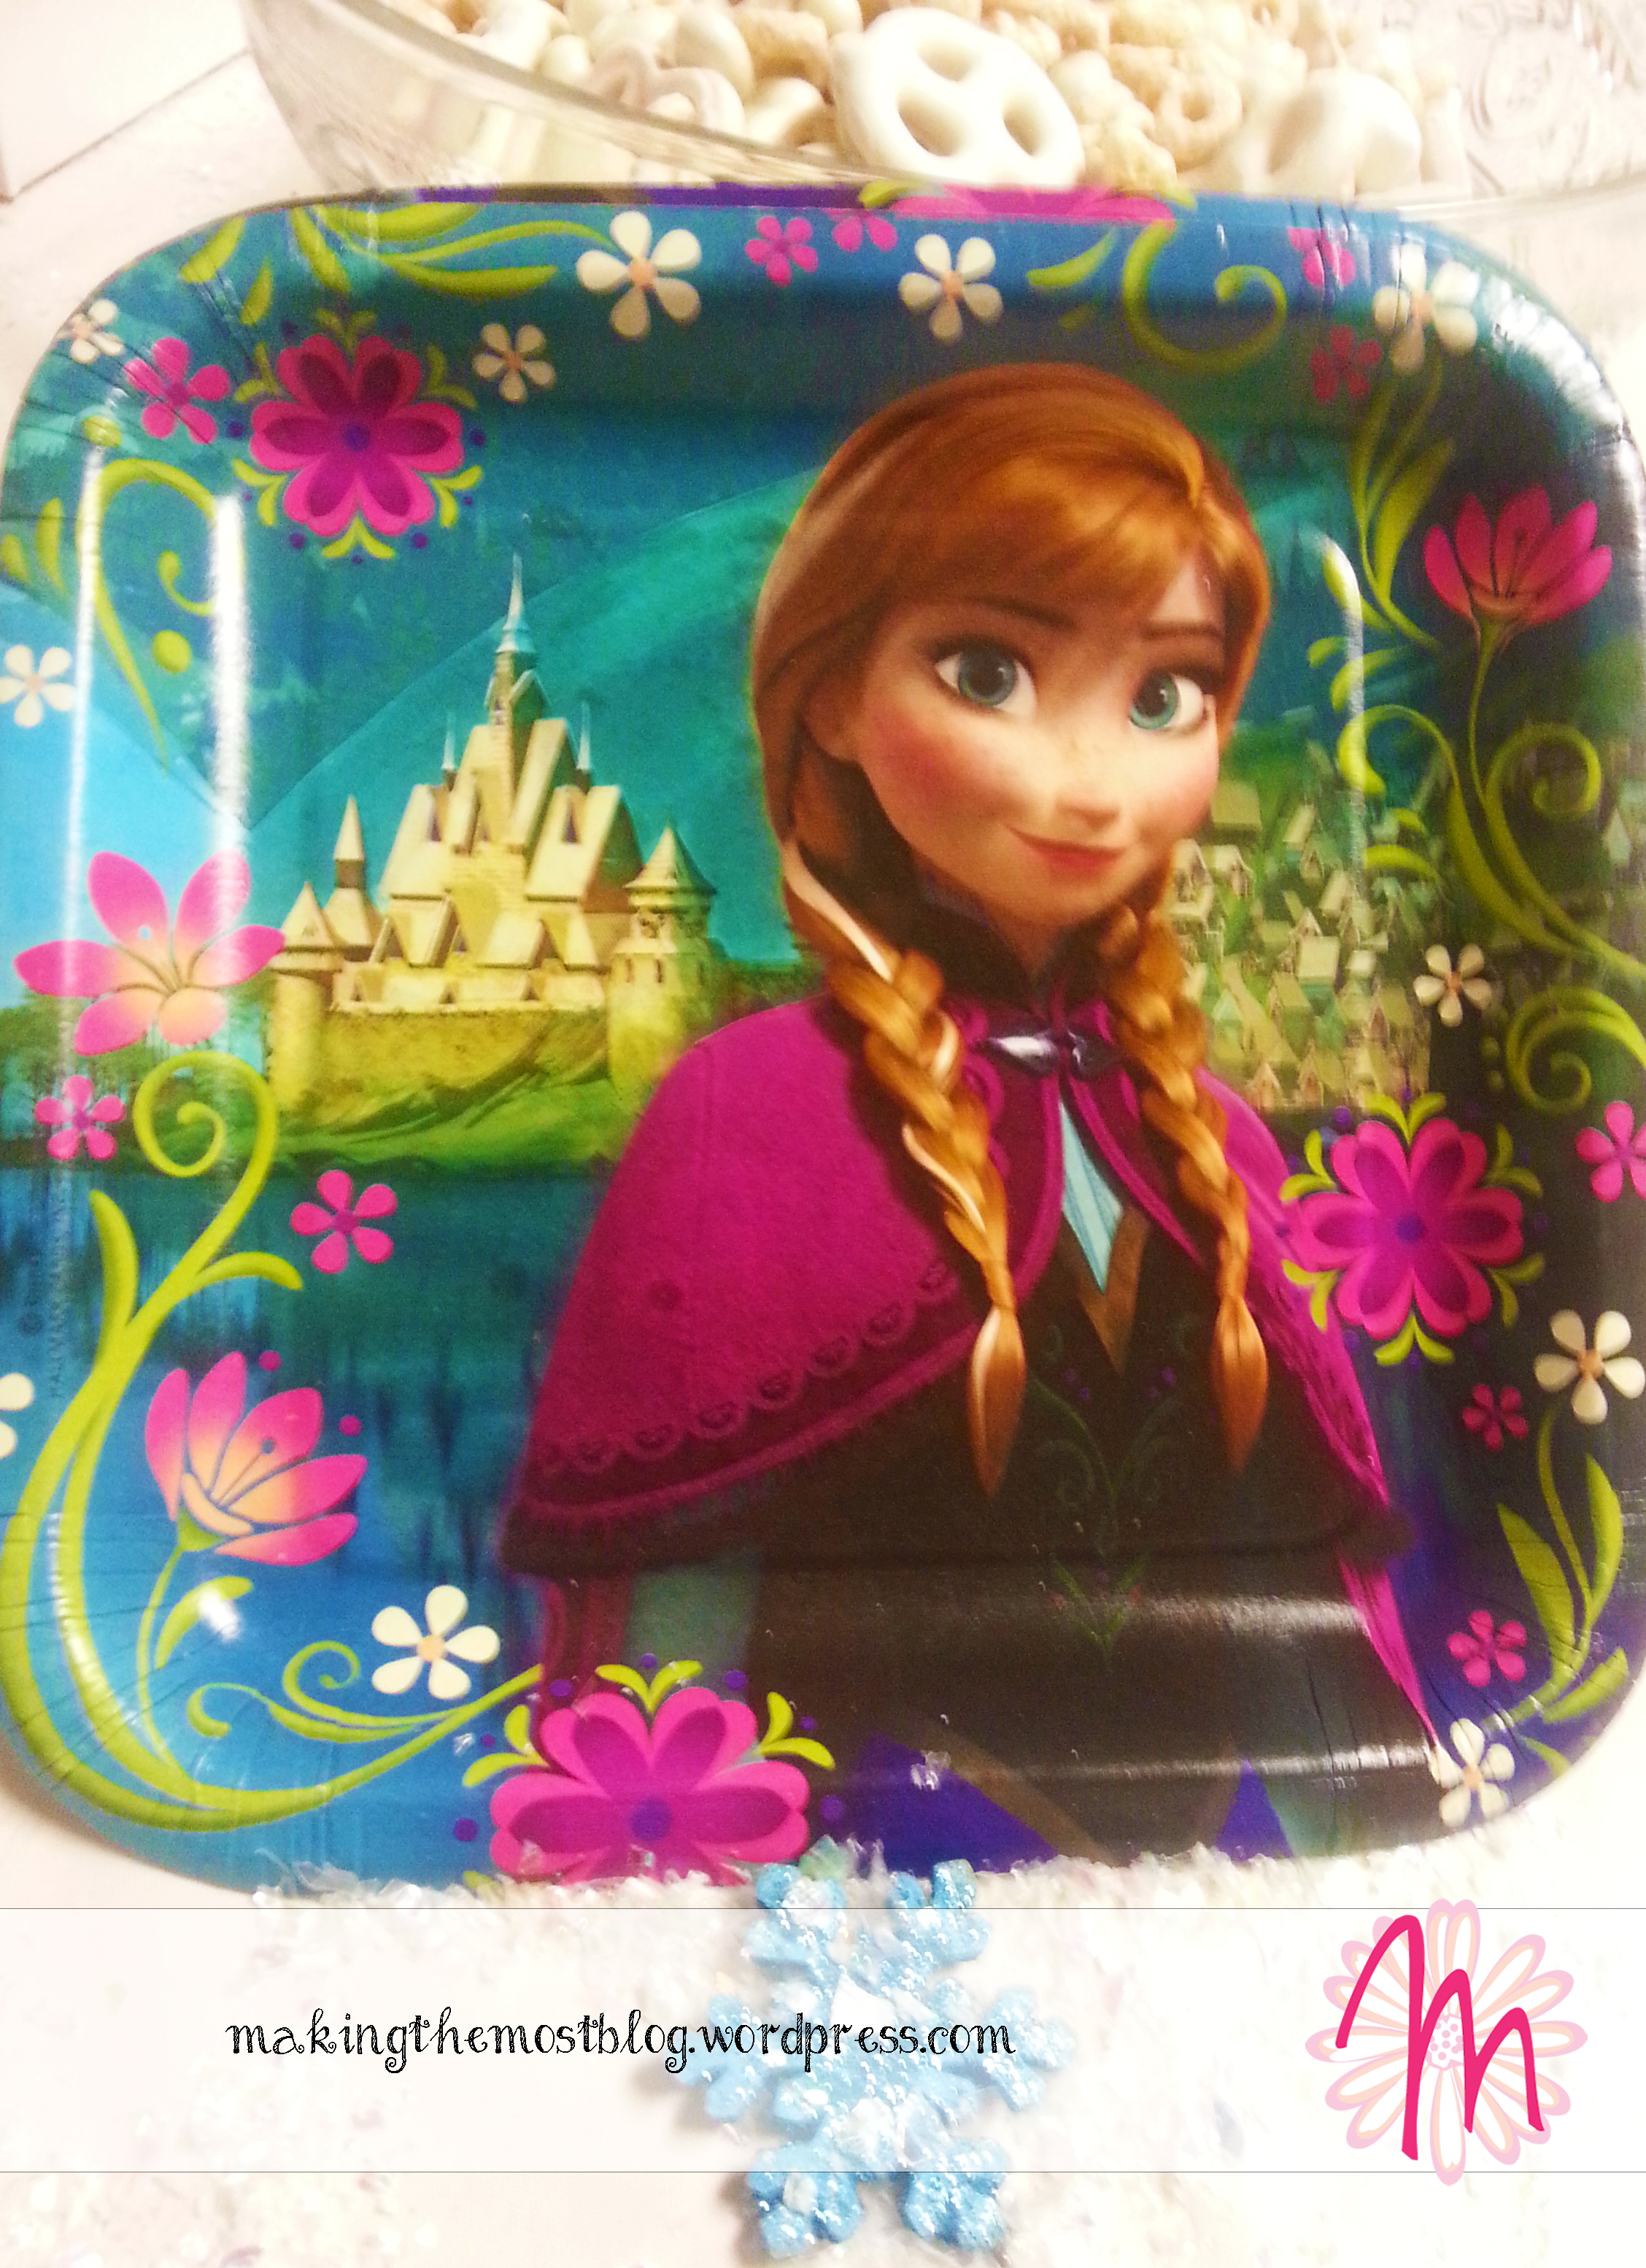 Plates | Disney Frozen Birthday | Making the Most Blog